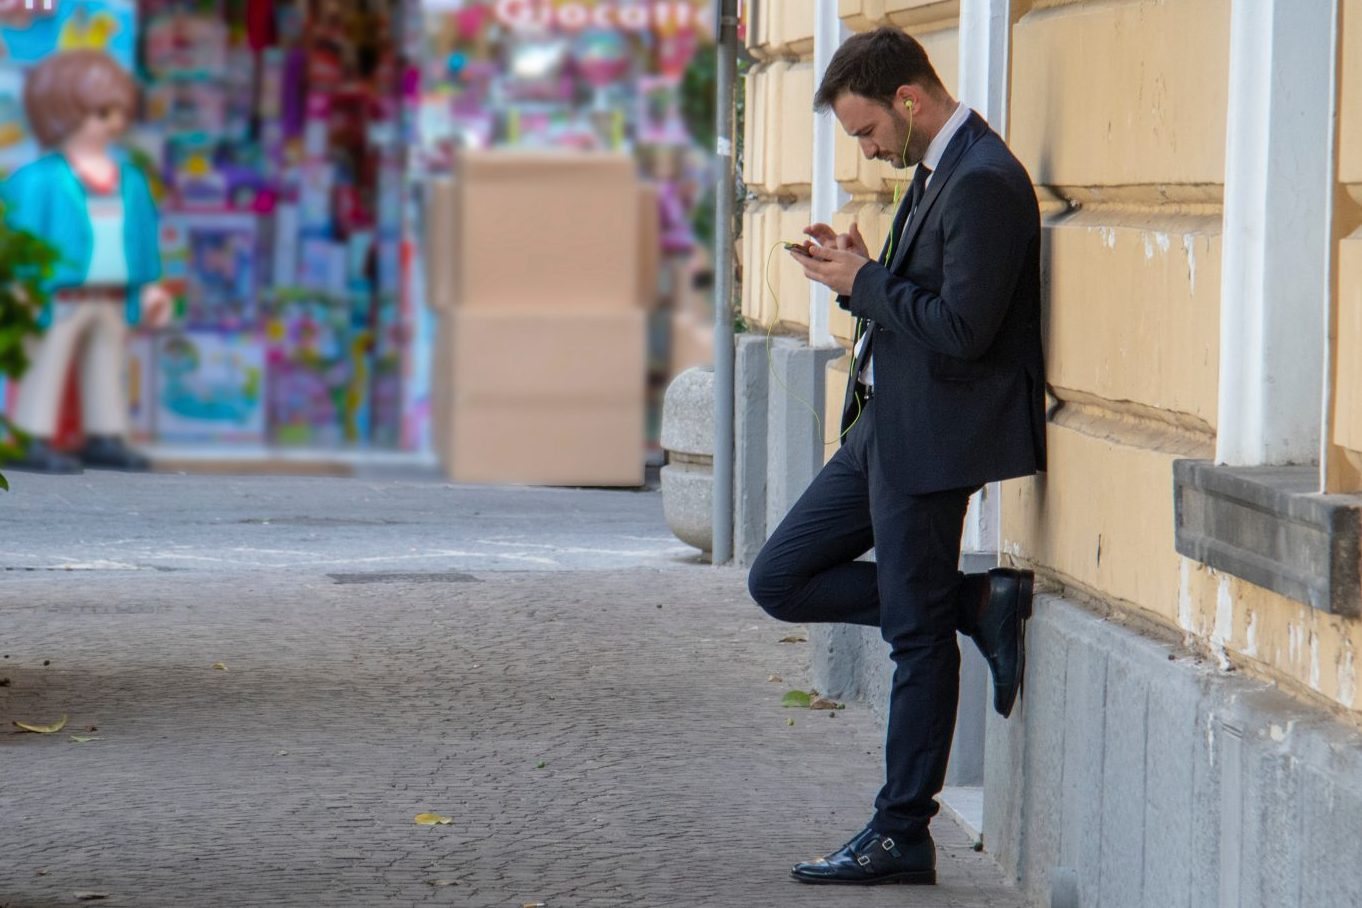 Modern Distractions Could Be Preventing Your Employees' Next Big Idea